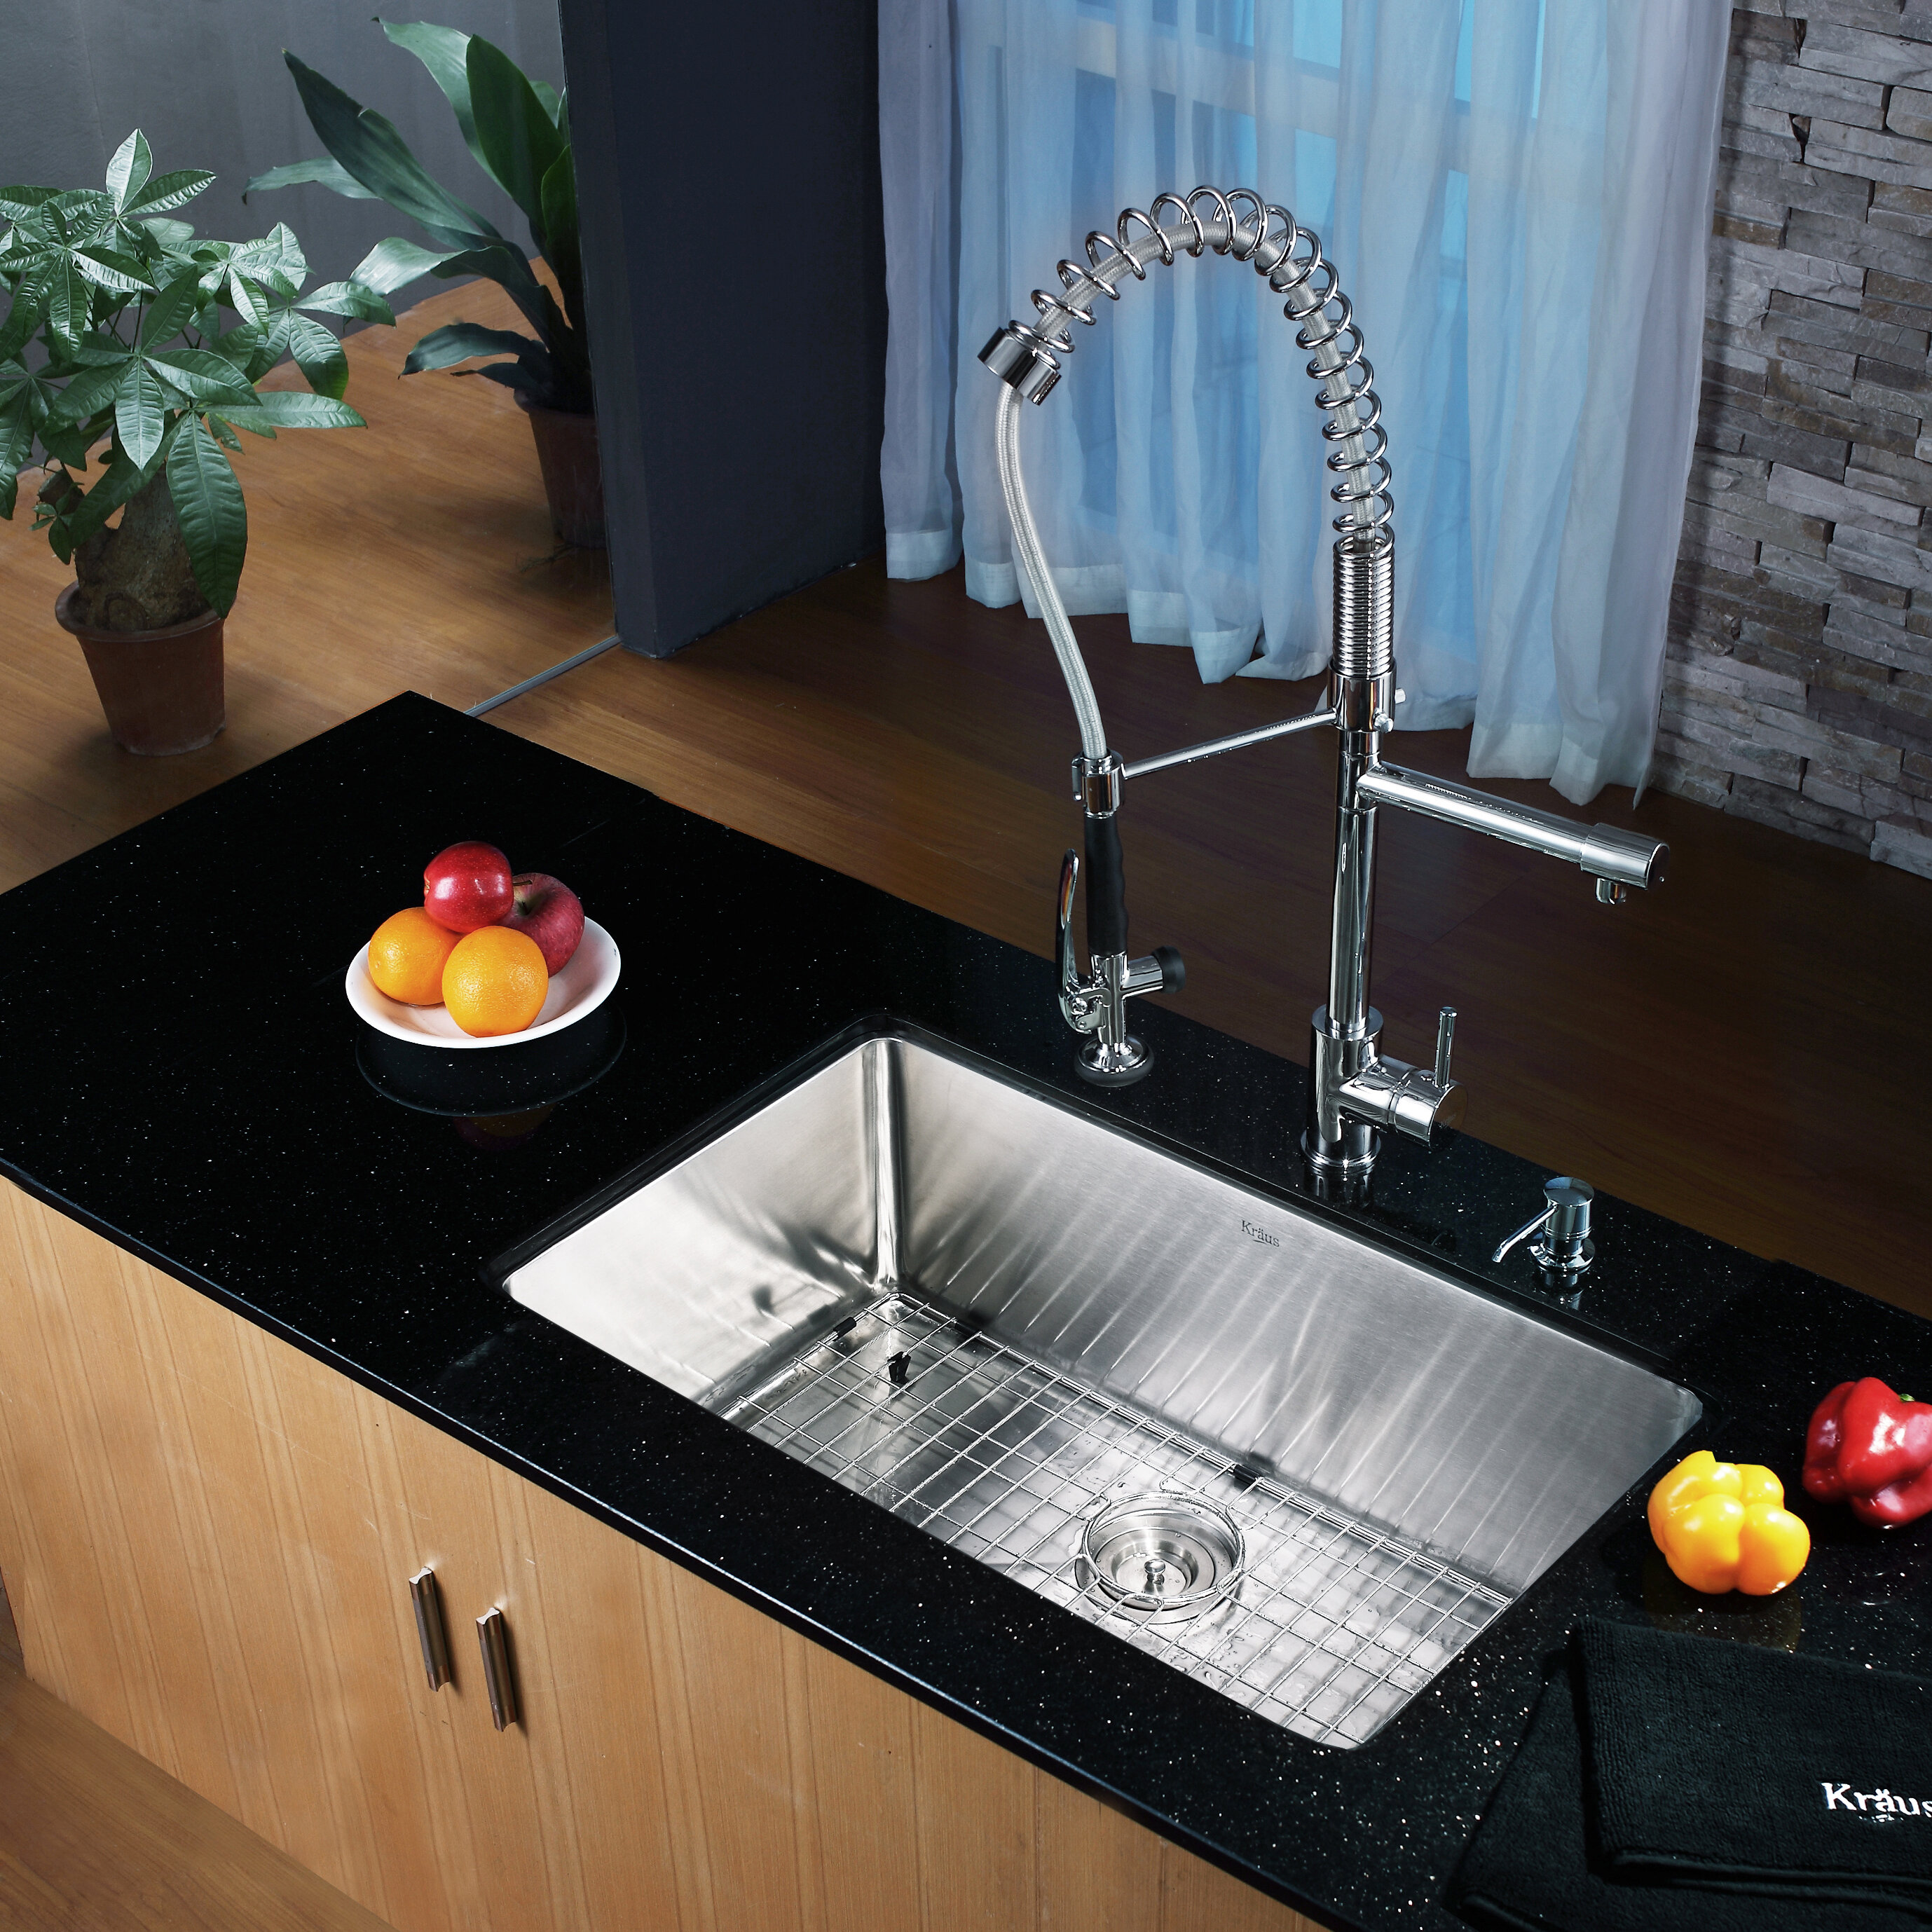 32 L X 19 W Undermount Kitchen Sink With Faucet And Soap Dispenser